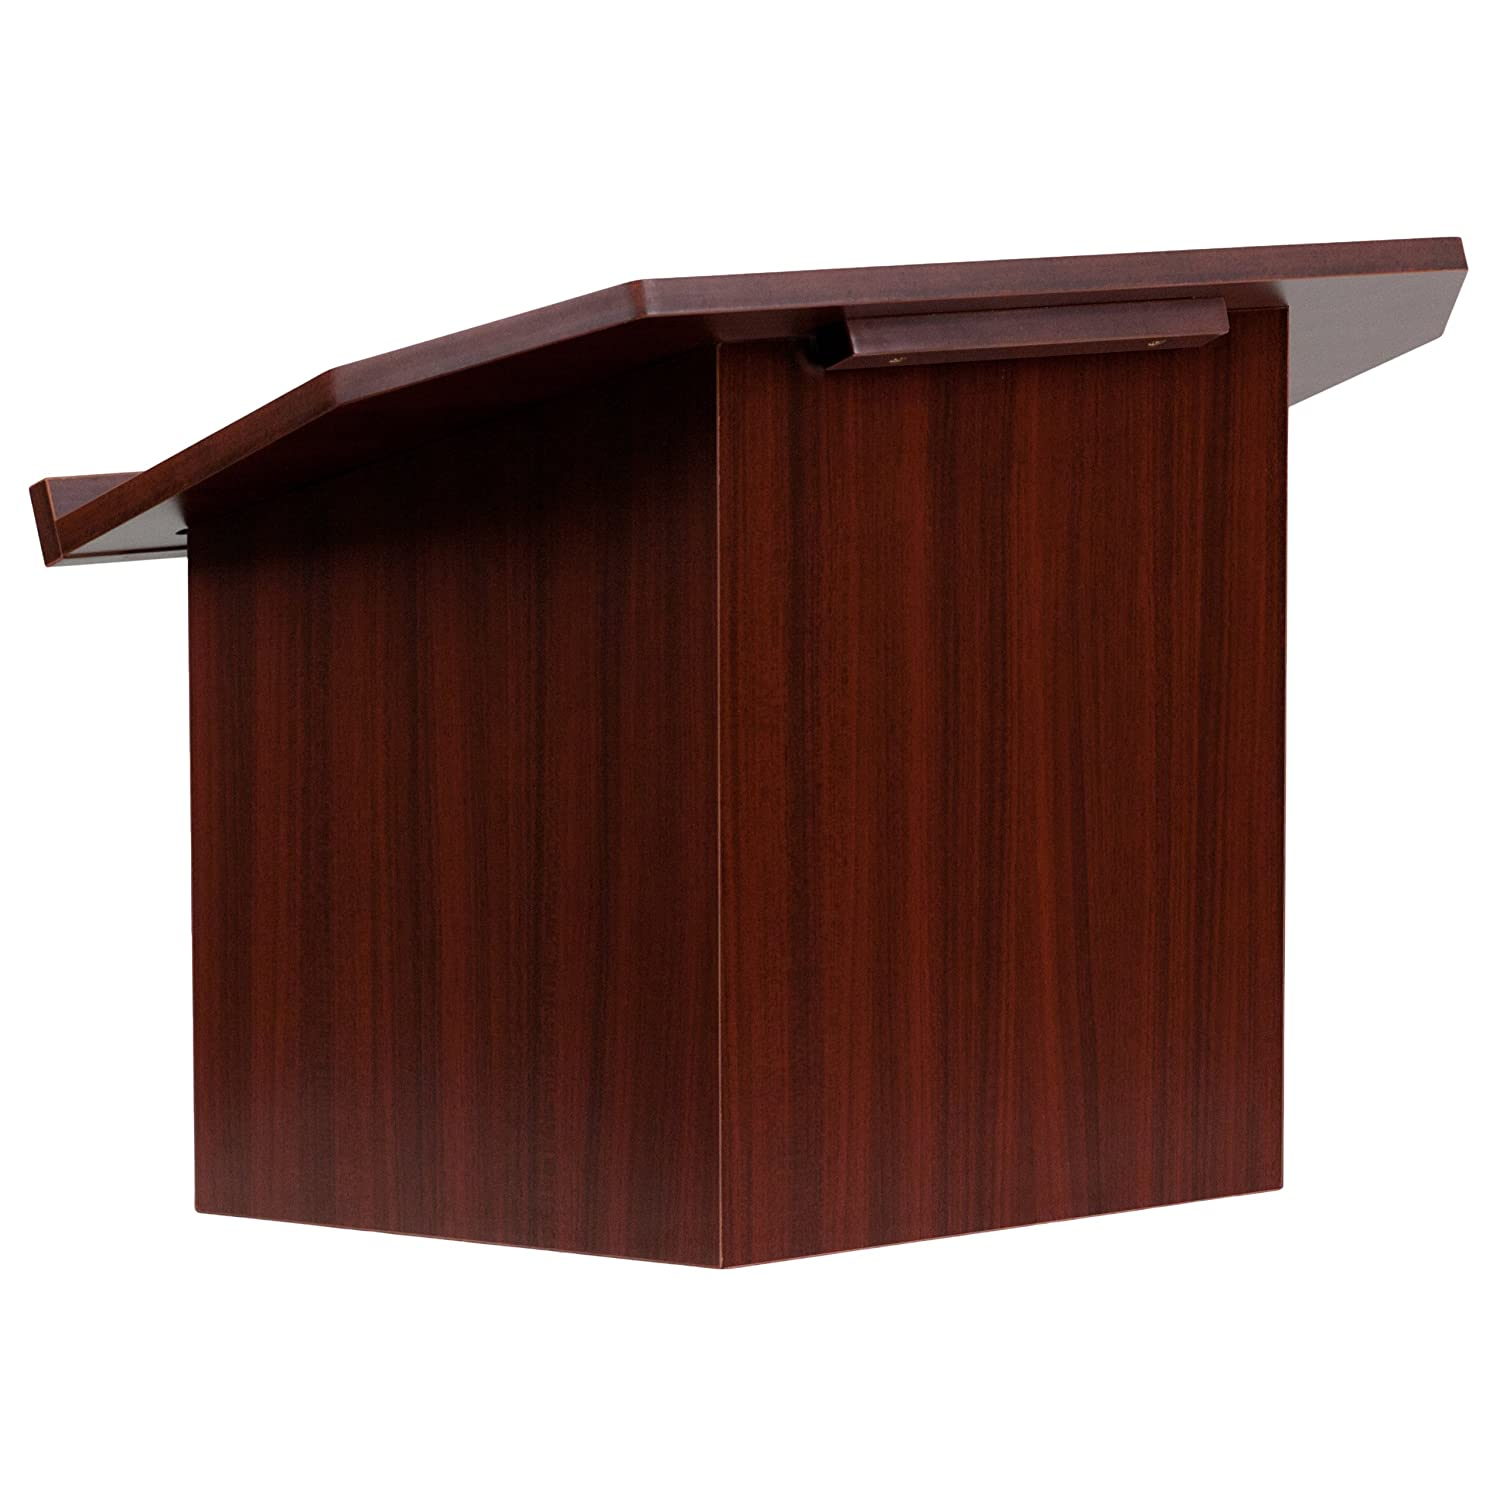 Flash Furniture Foldable Mahogany Tabletop Lectern Flash Furniture - DROPSHIP MT-M8833-LECT-GG